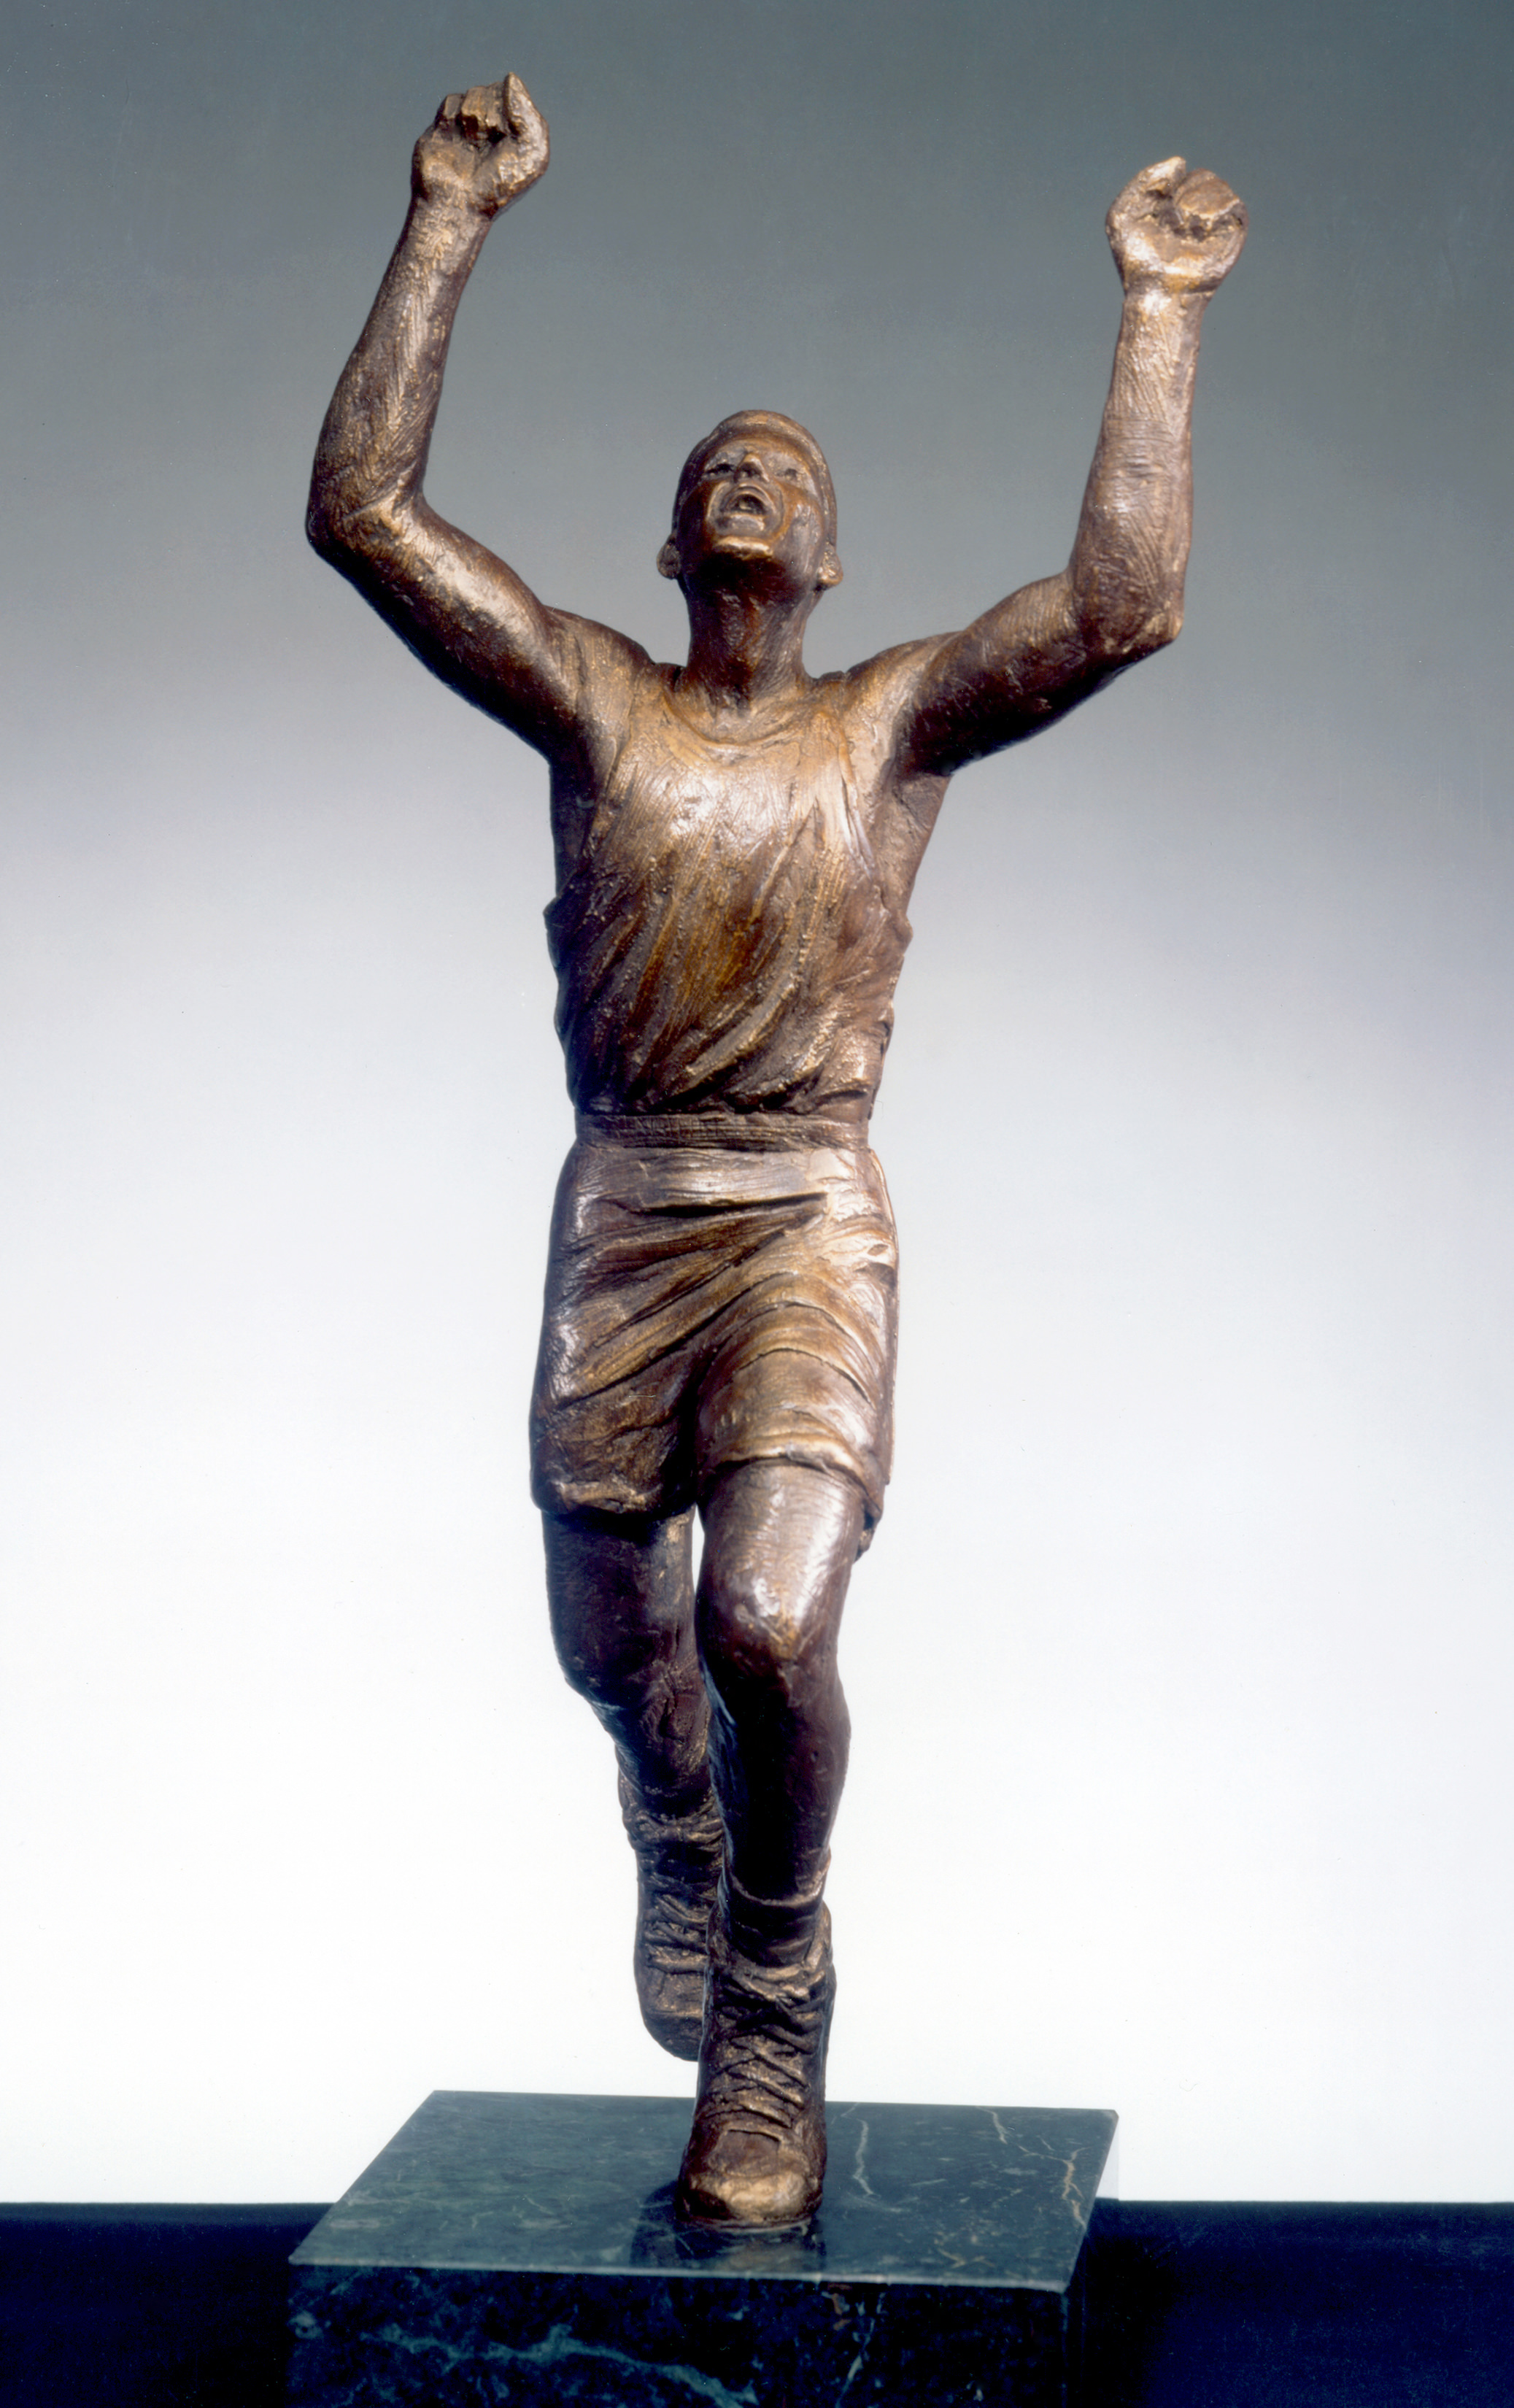 the-drazen-petrovic-sports-sculpture-mcdonalds-championship-mvp-sports-trophy.jpg